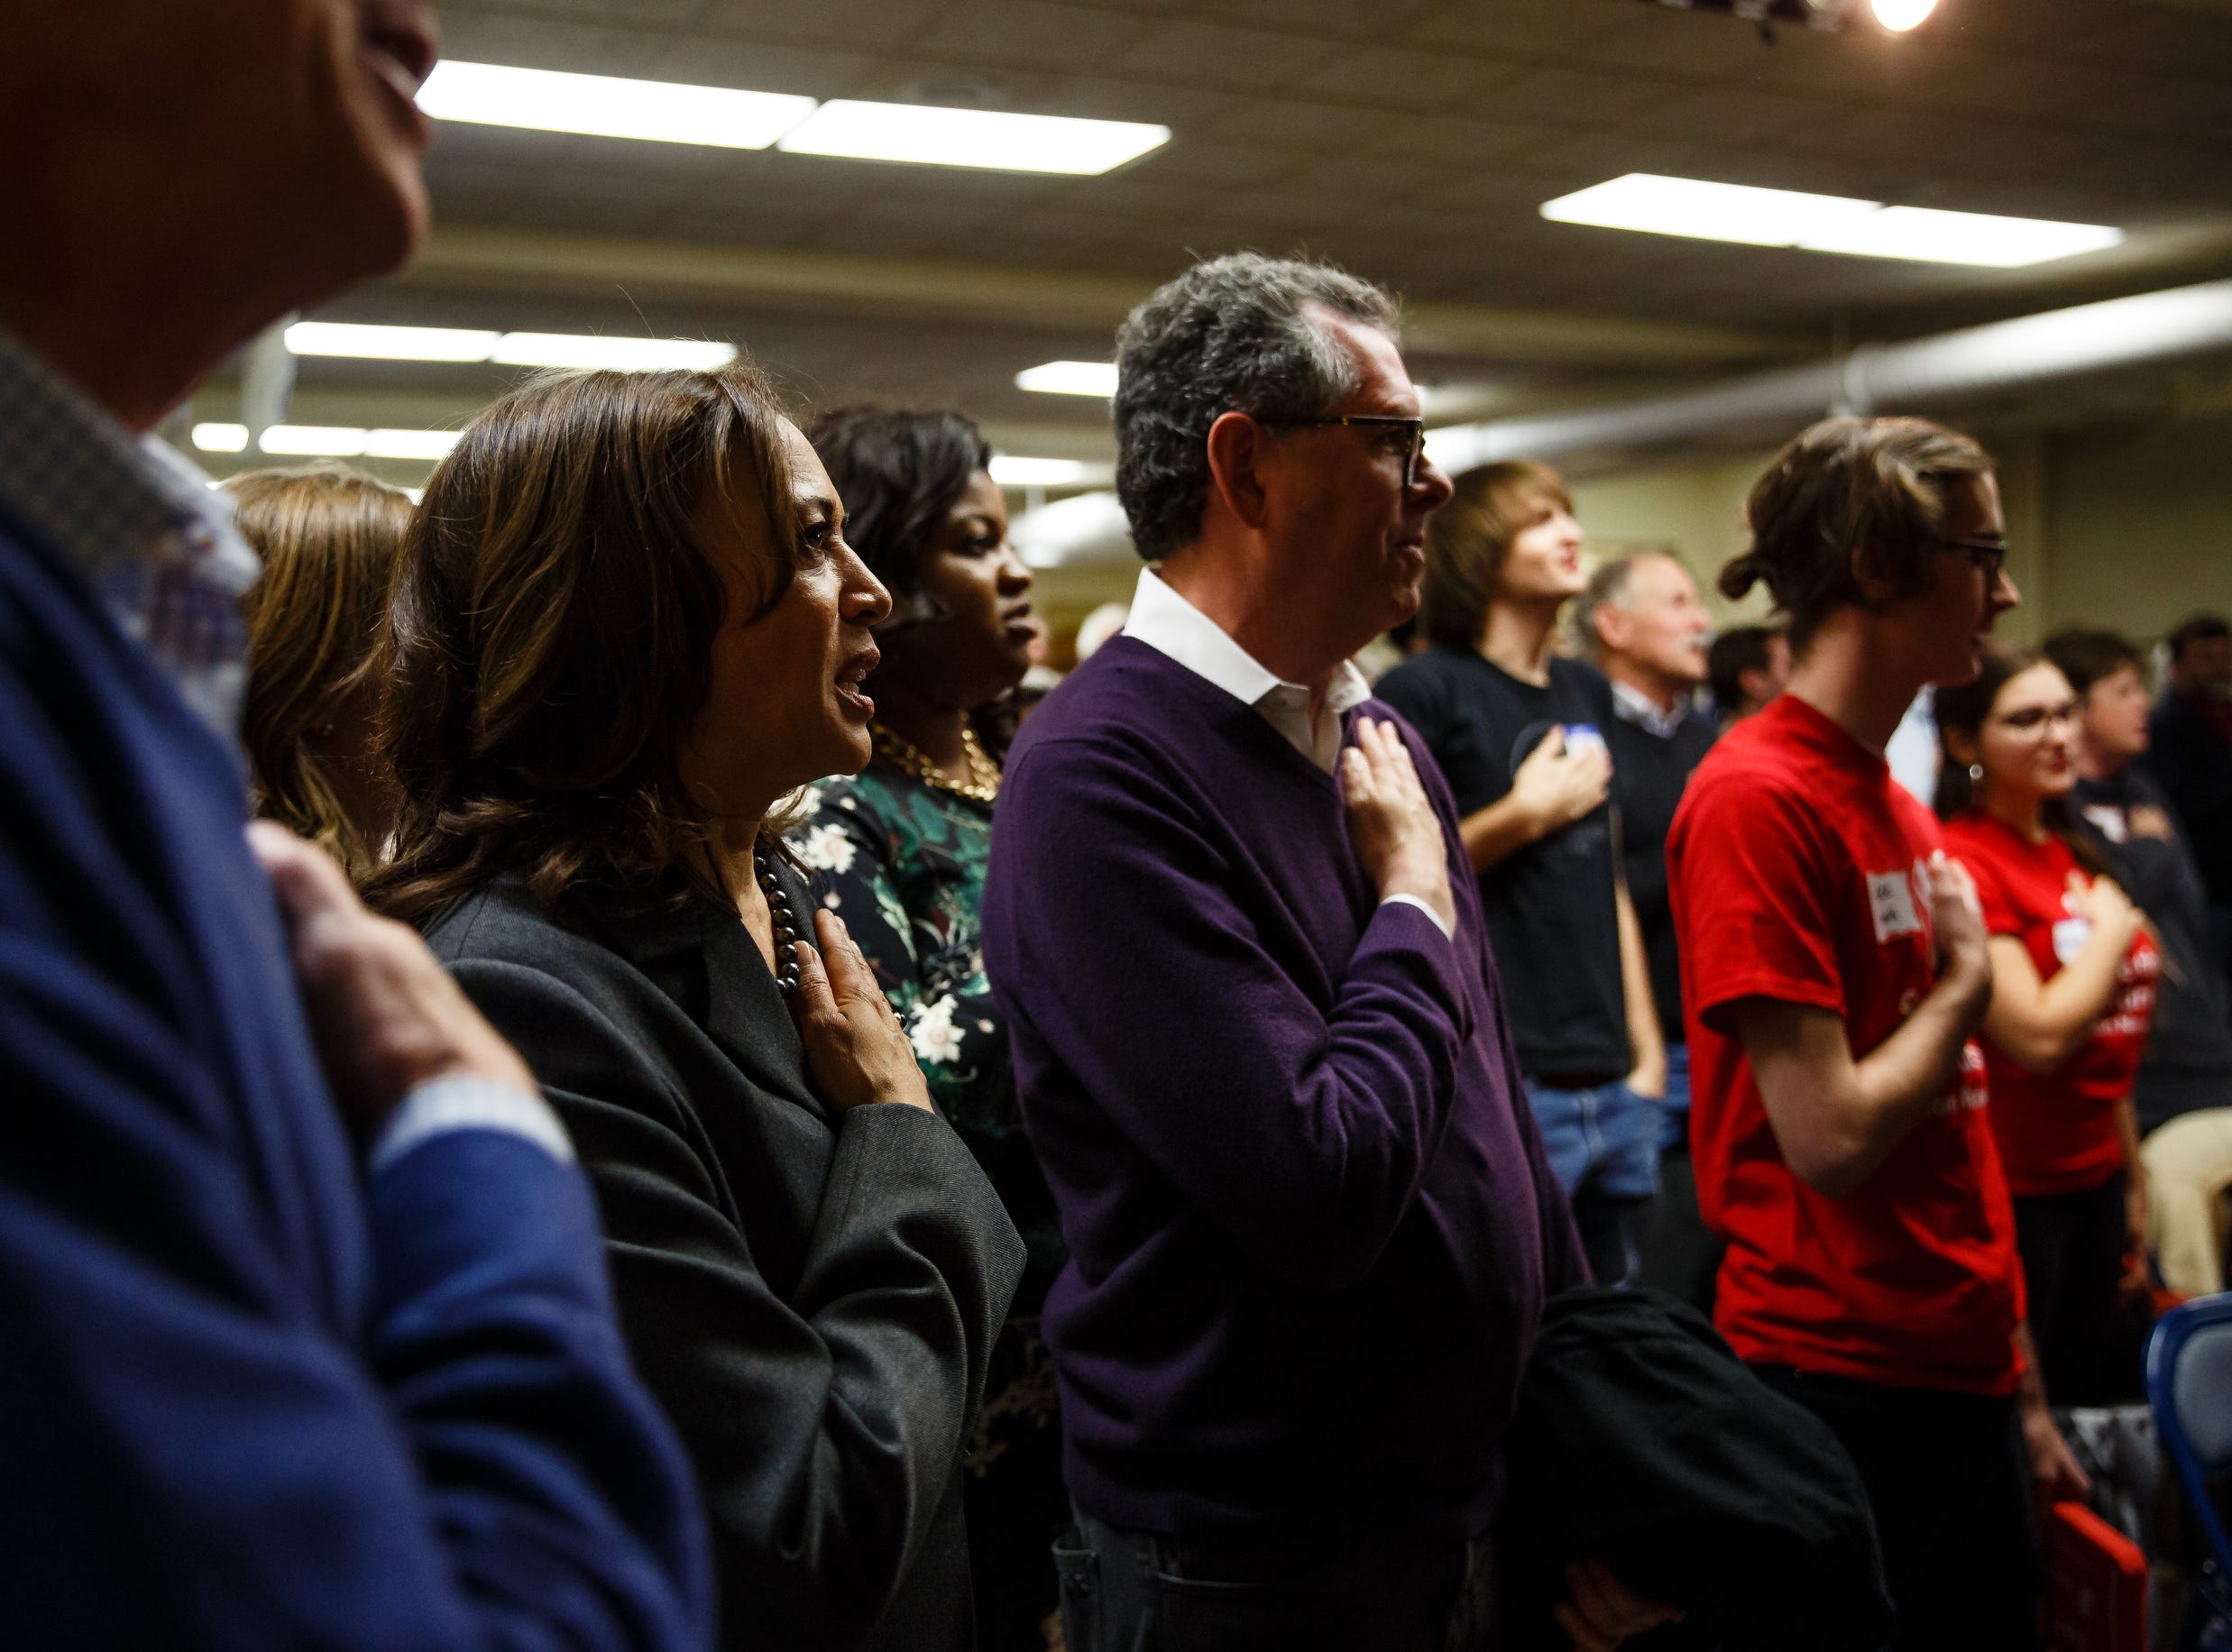 California Sen. Kamala Harris and former Governor of Colorado John Hickenlooper, far left, recite the Pledge of Allegiance at the Story County Democrats: Annual Soup Supper Fundraiser on Saturday, Feb. 23, 2019 in Ames.